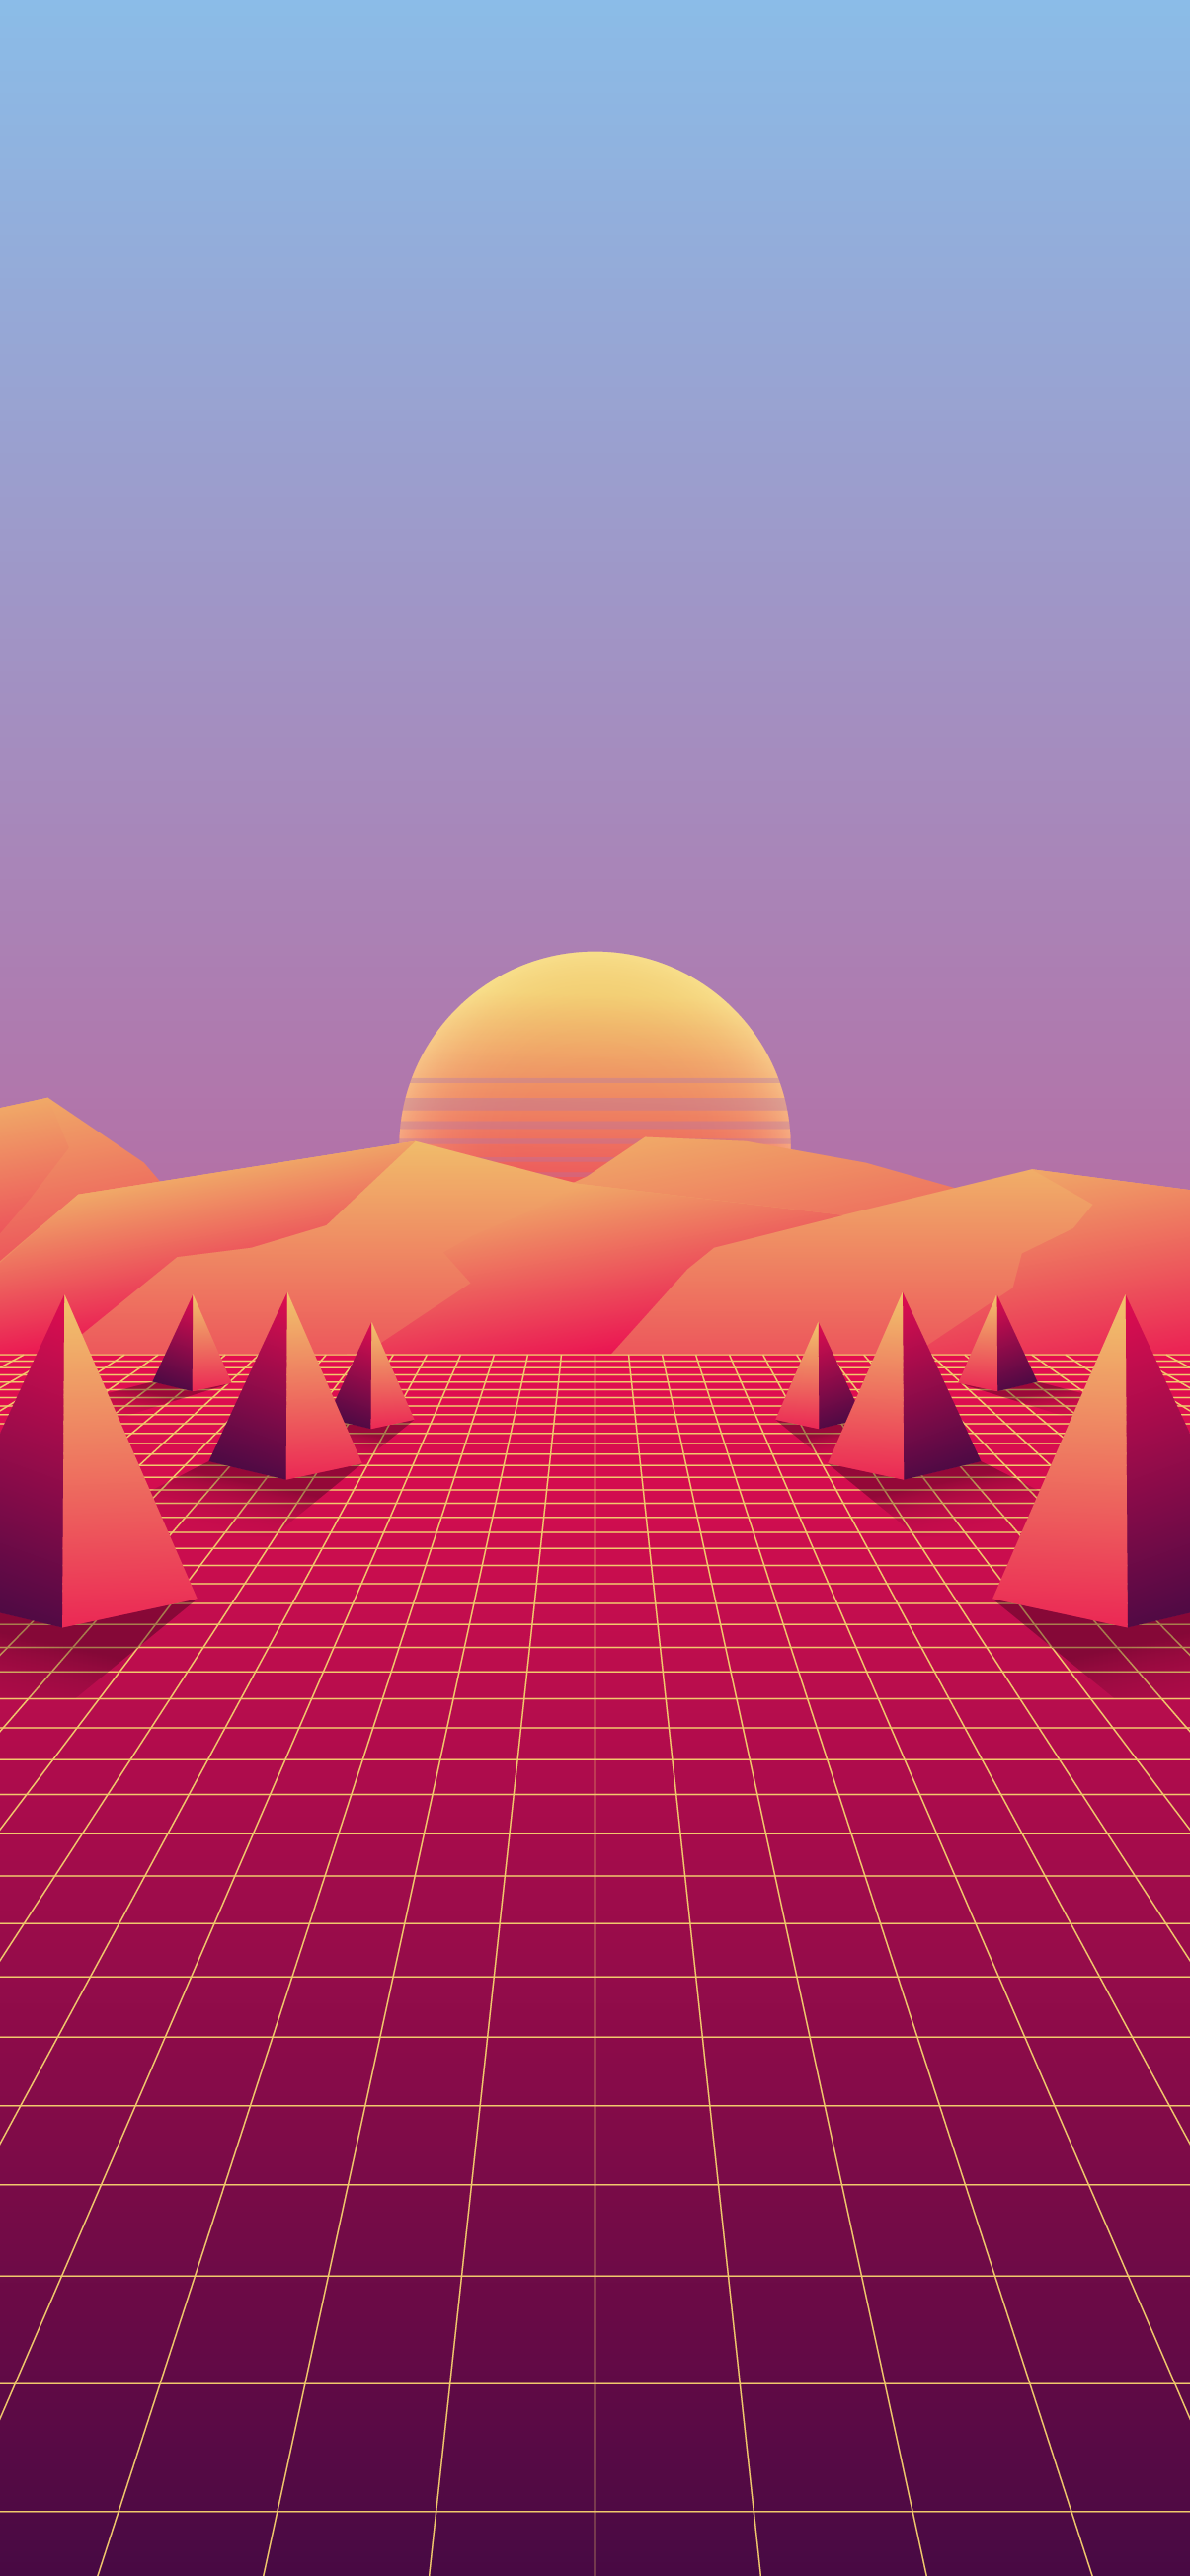 SYNTHWAVE SYNTH-WAVE GEOMETRIC SUN GRID RETRO FUTURISTIC